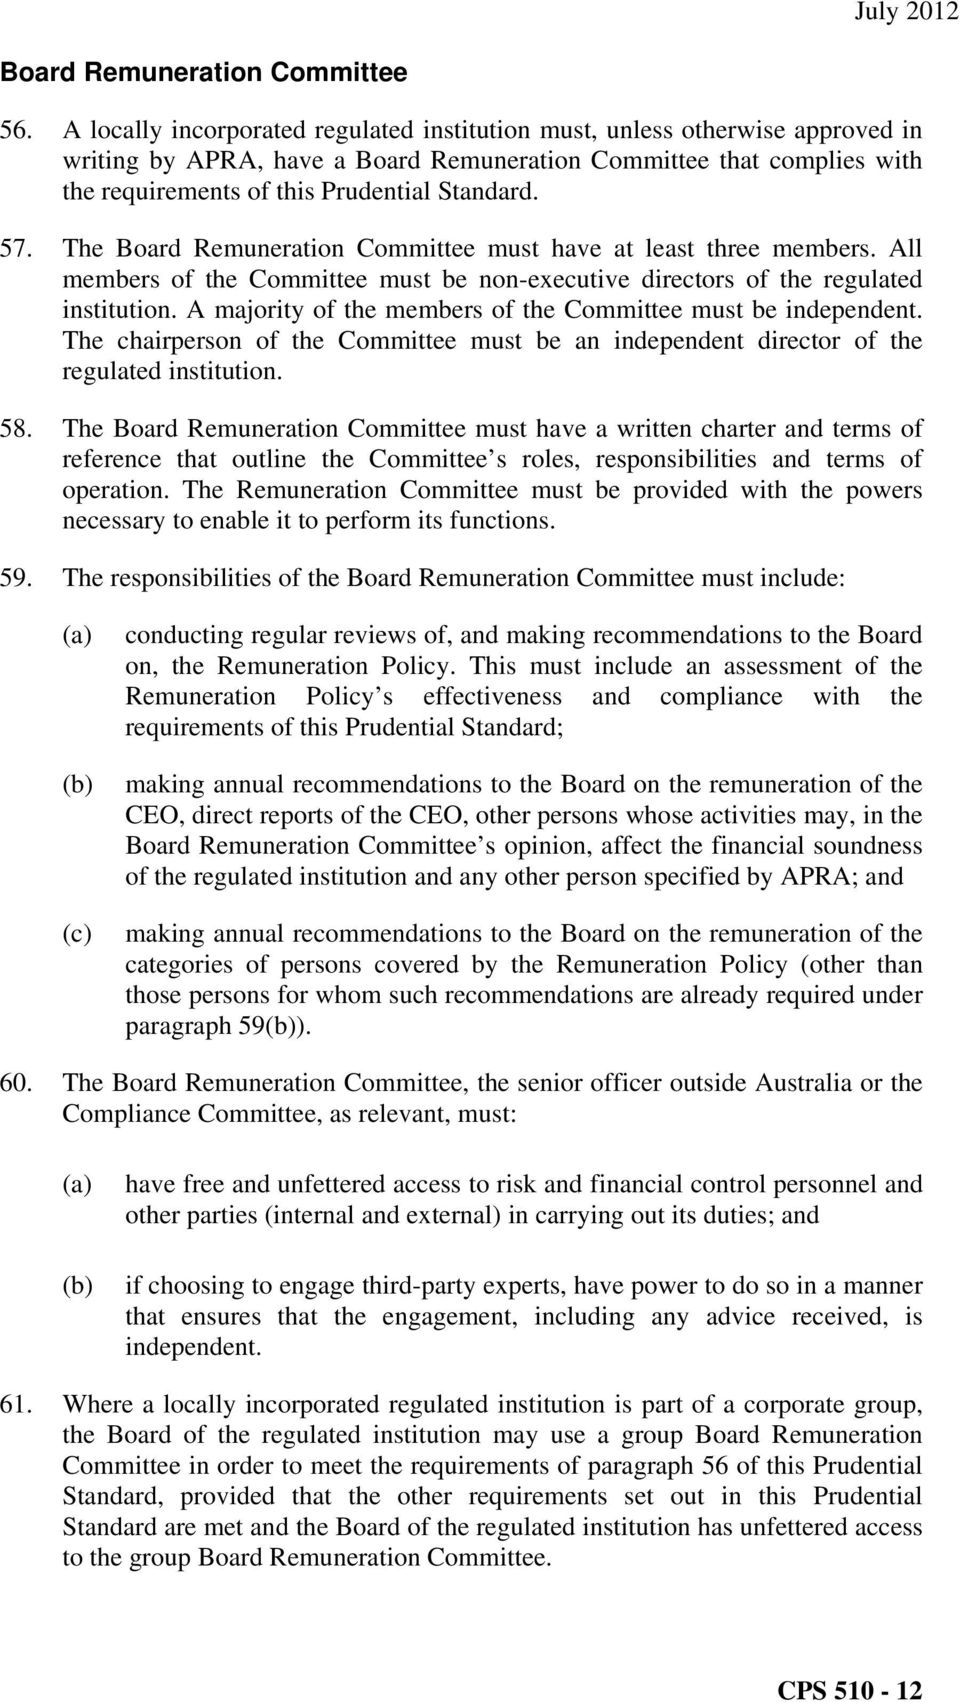 57. The Board Remuneration Committee must have at least three members. All members of the Committee must be non-executive directors of the regulated institution.